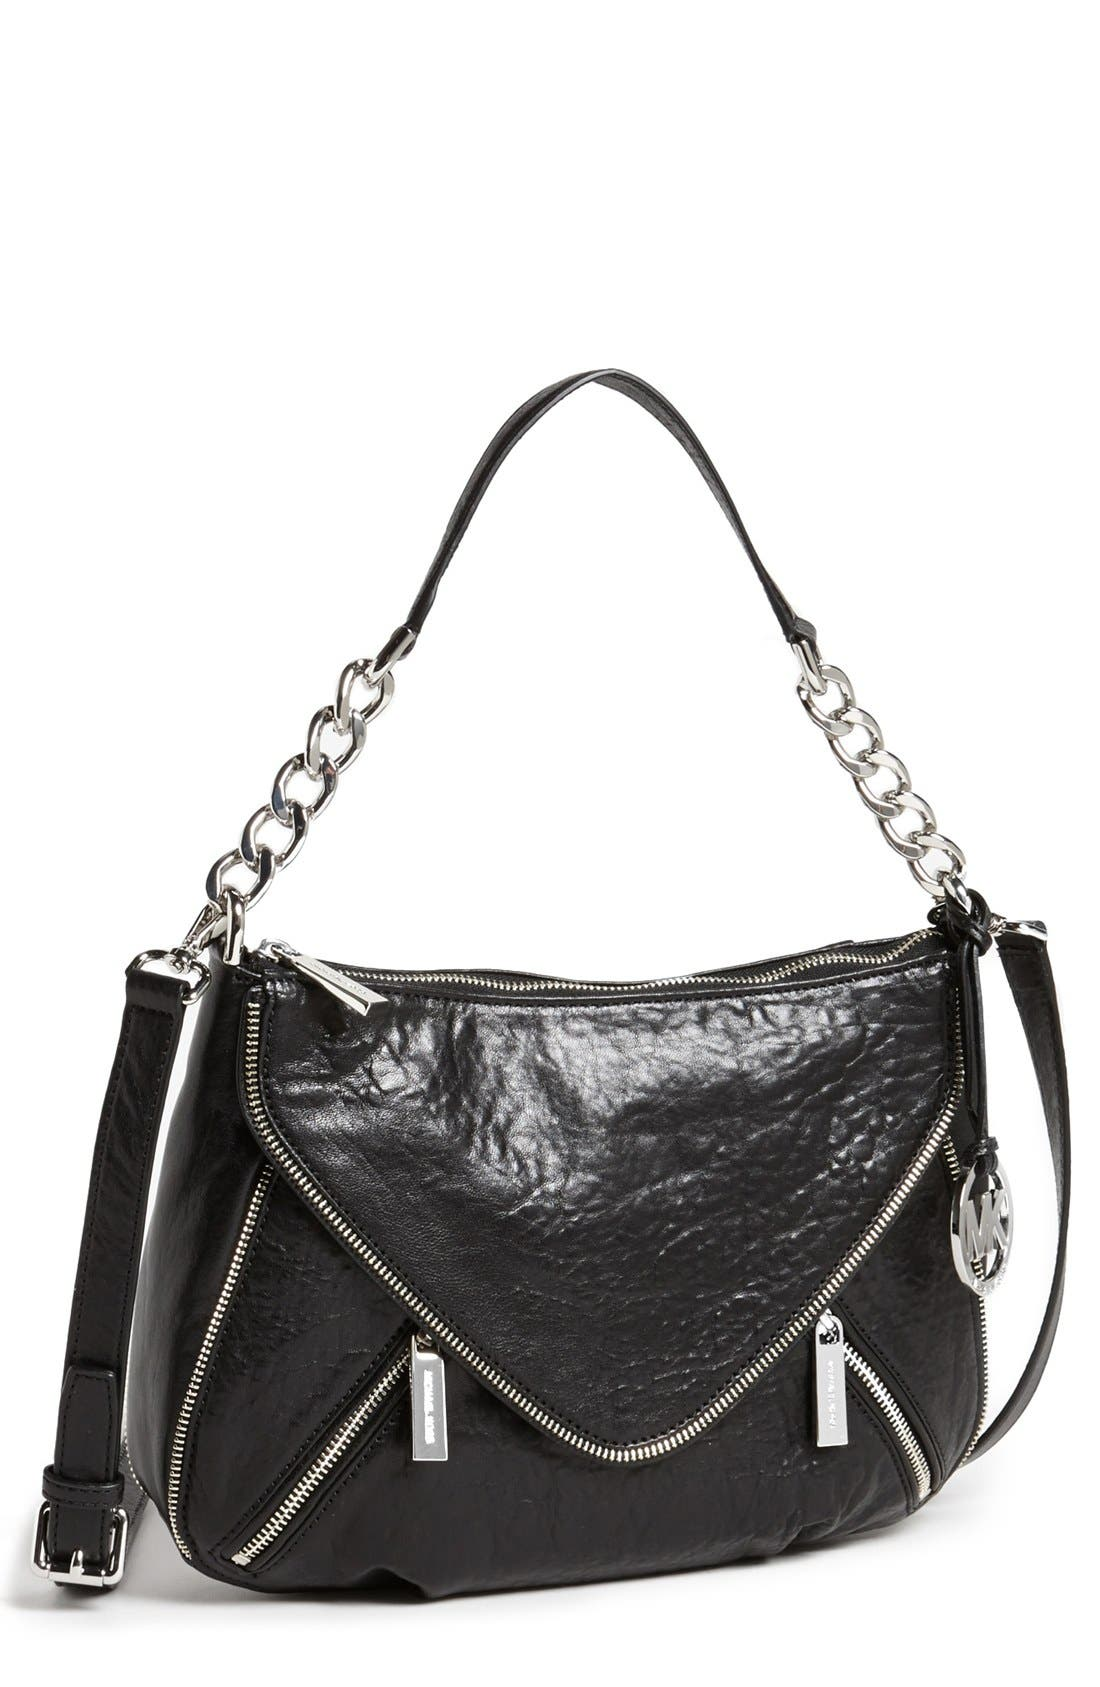 Main Image - MICHAEL Michael Kors 'Odette - Medium' Leather Crossbody Bag